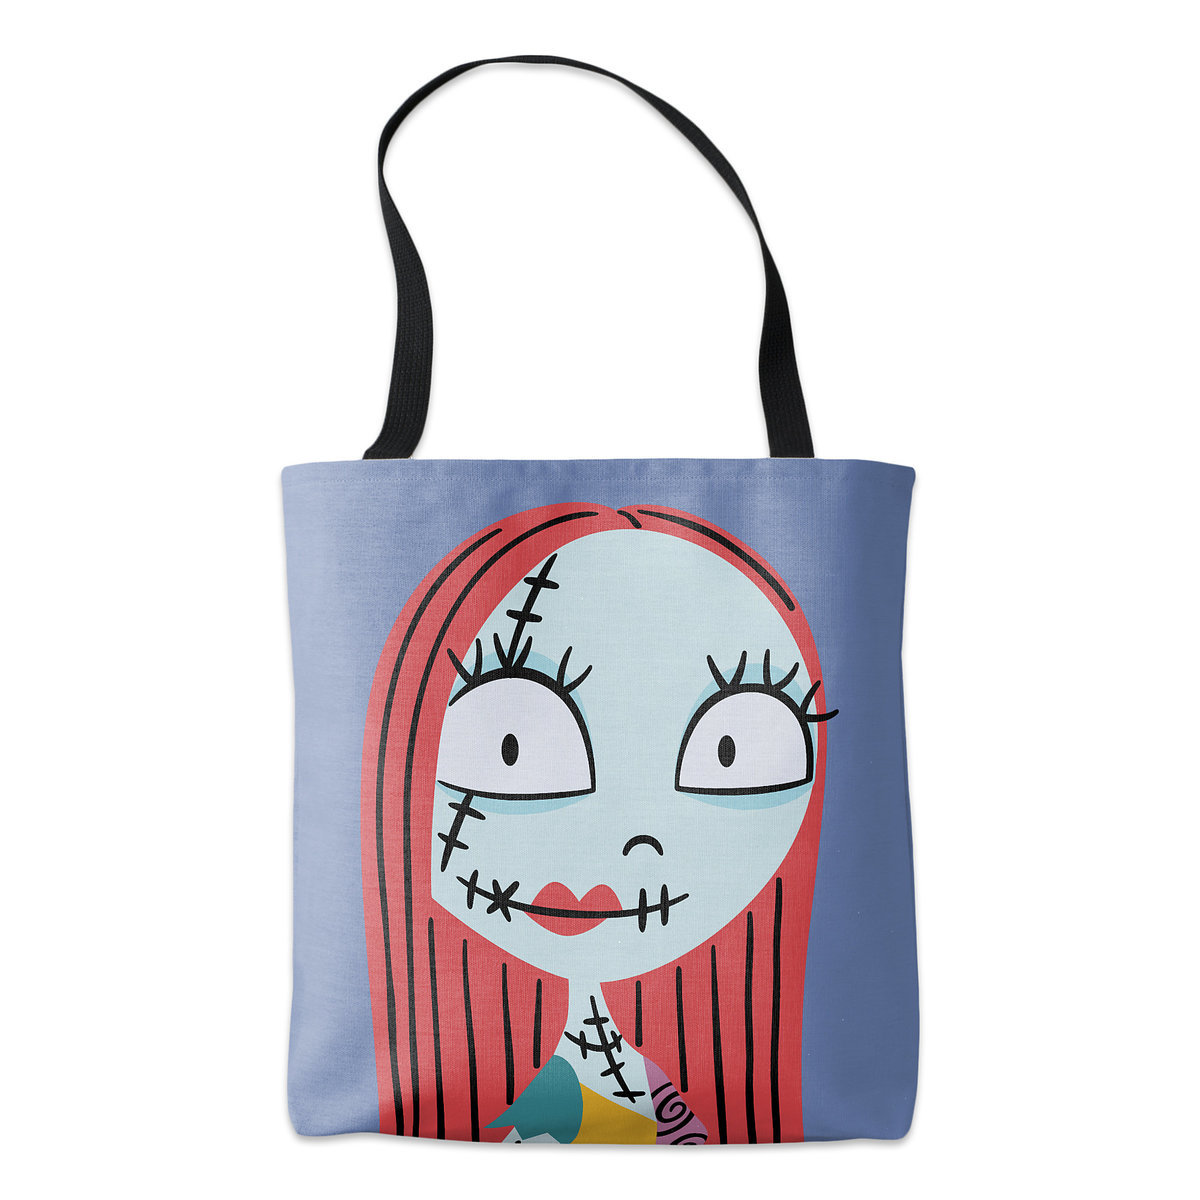 Adorable Tote Bags at shopDisney! 4